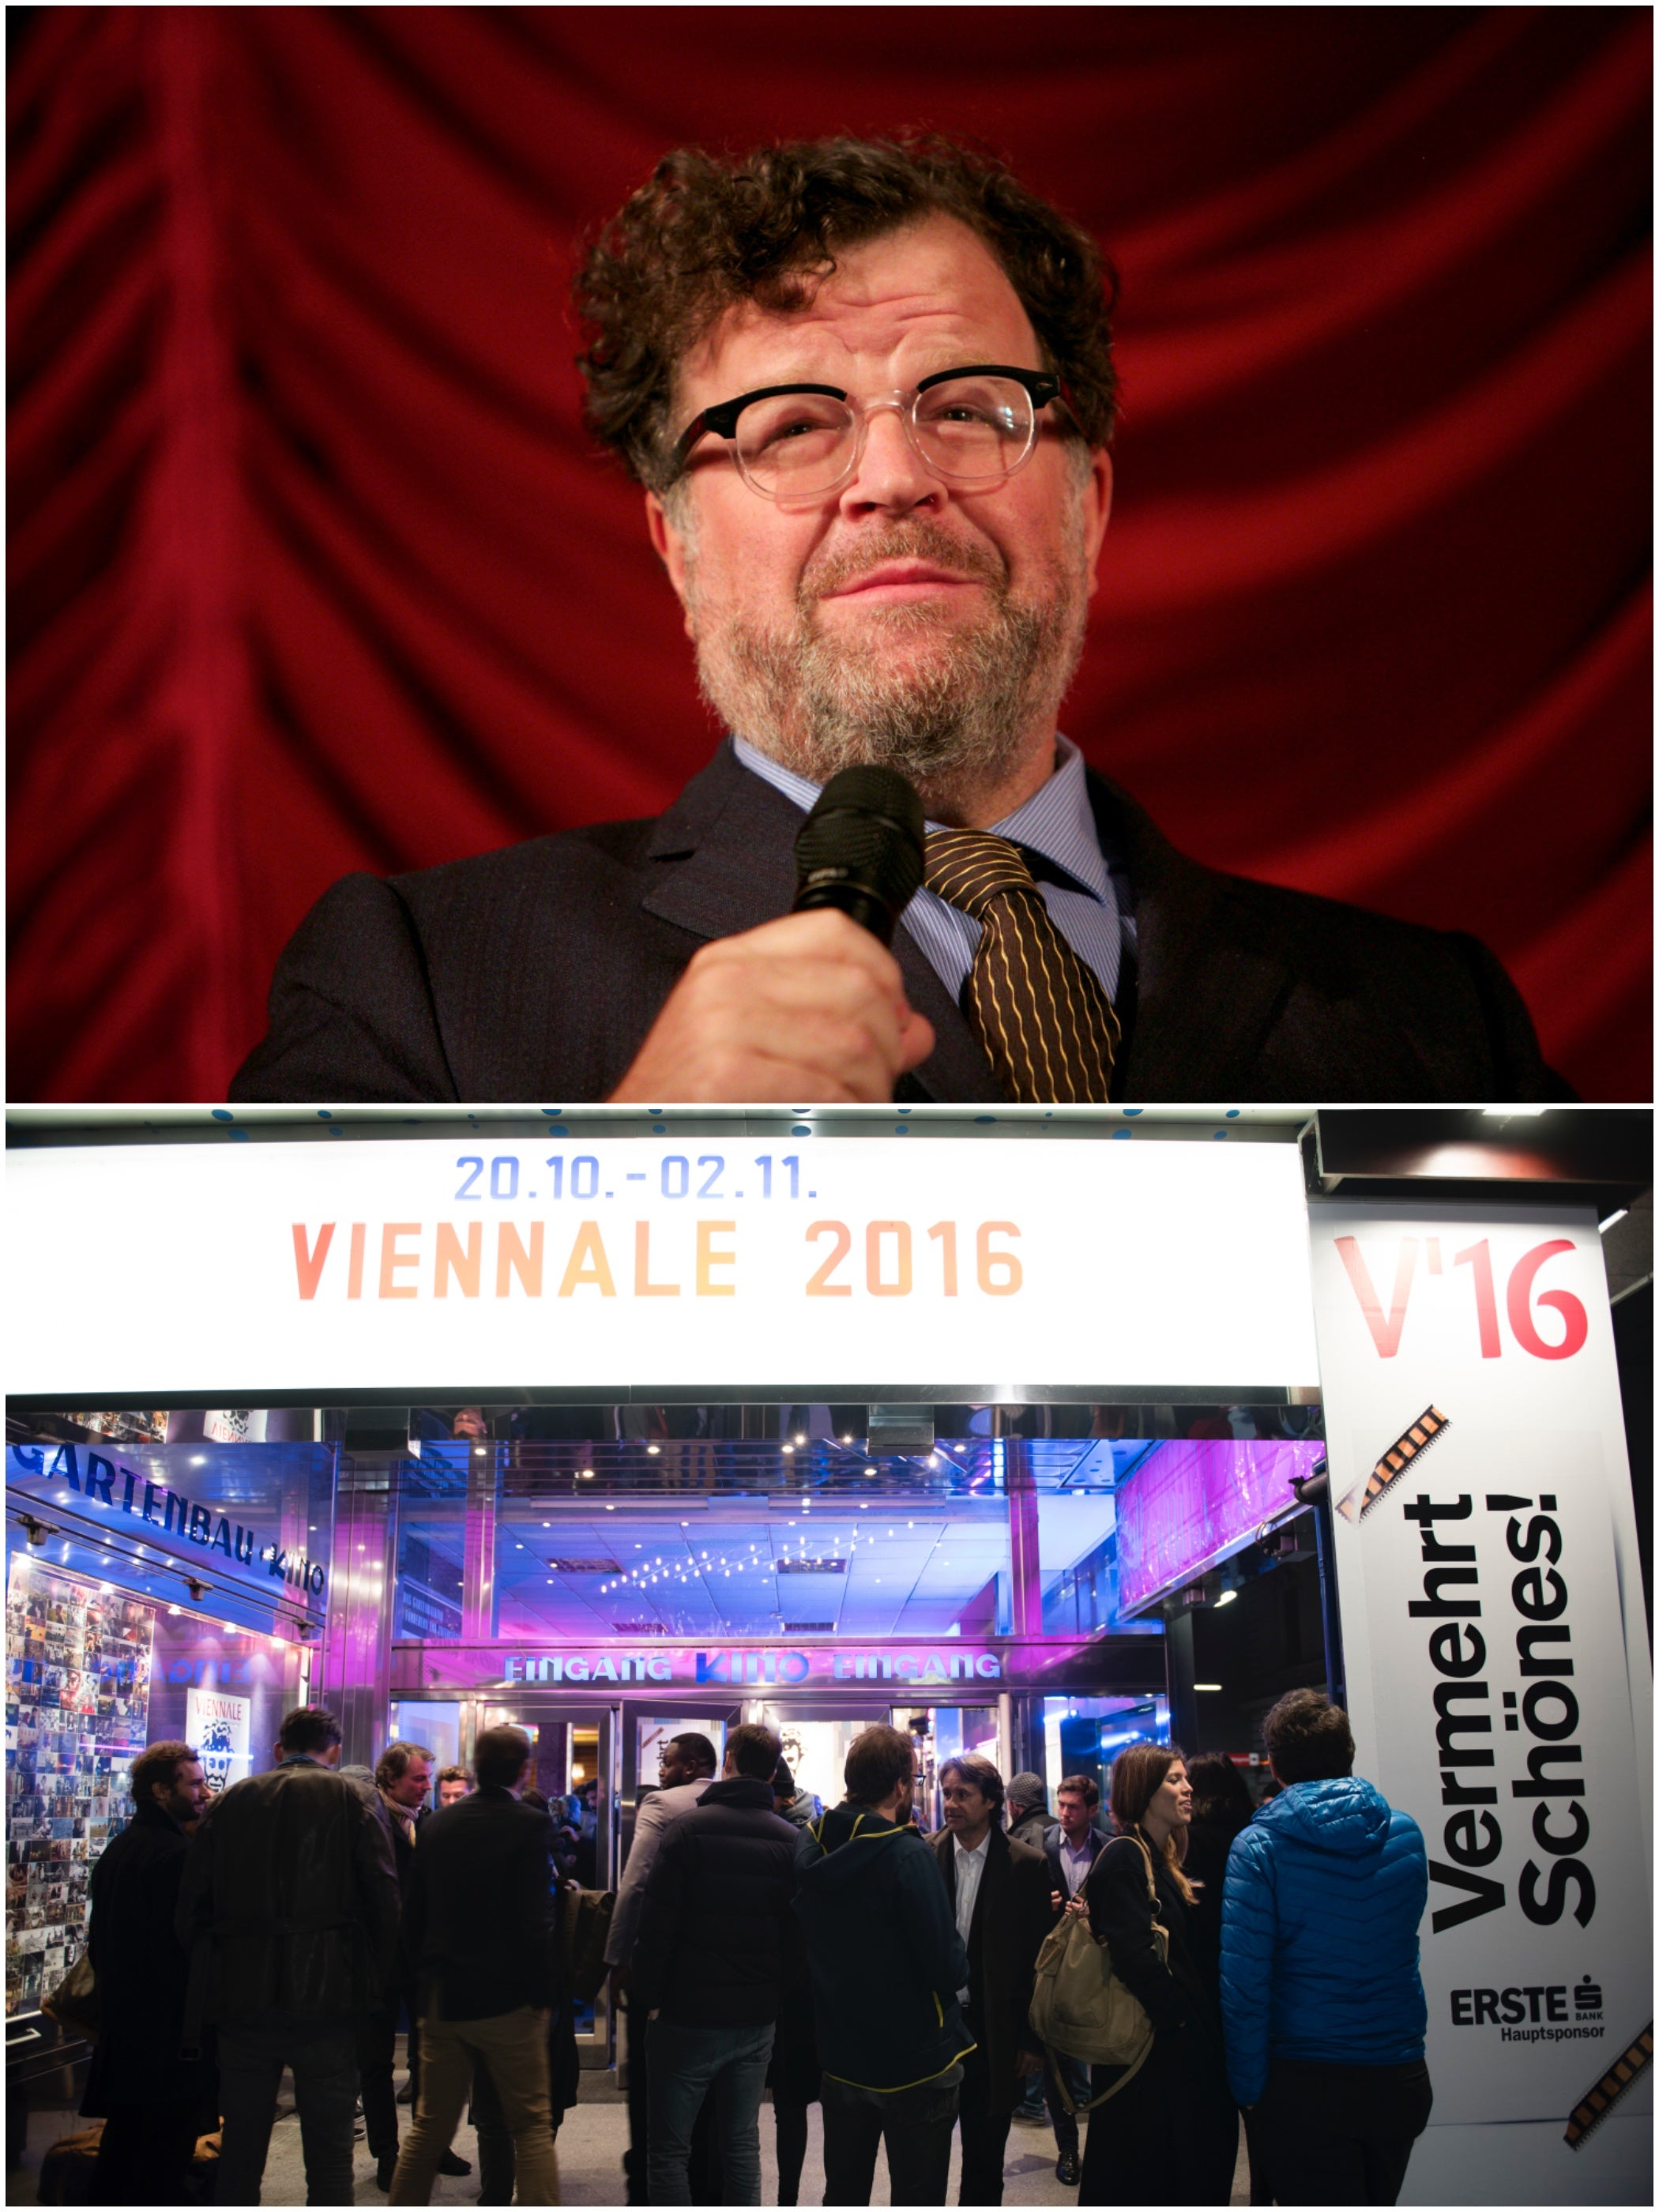 Director Kenneth Lonergan at the 2016 Vienna Film Festival